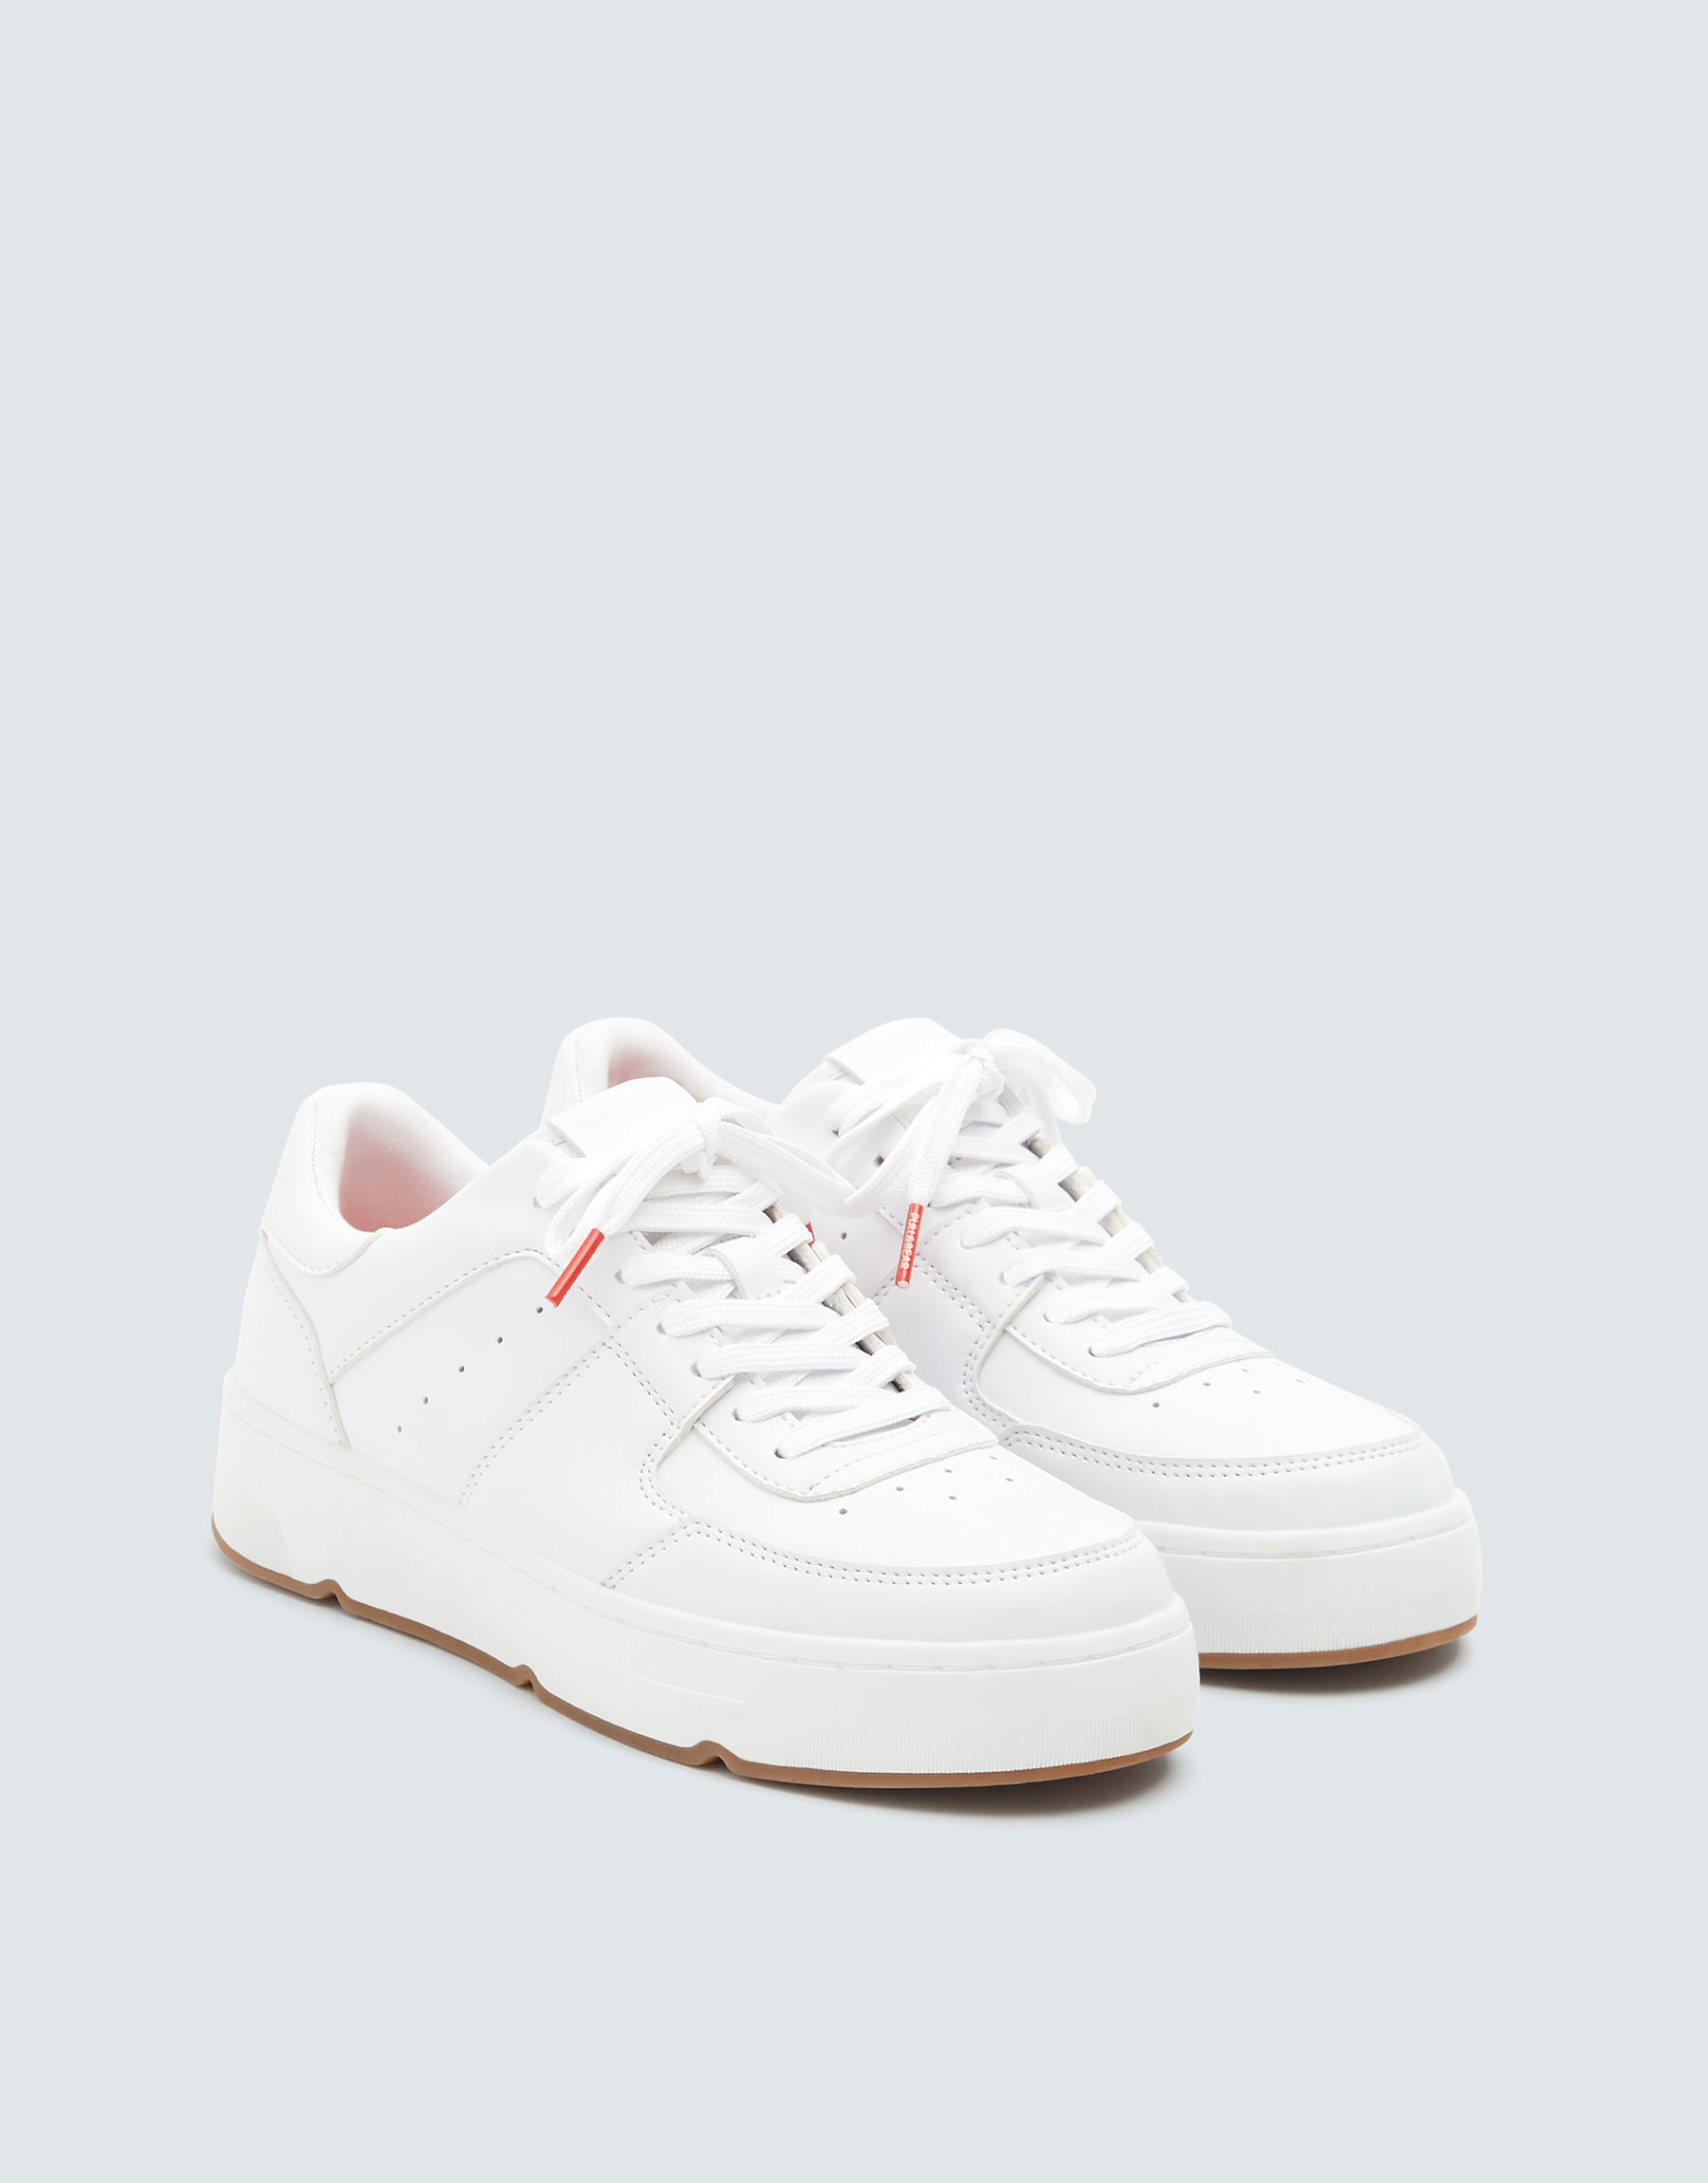 high quality free delivery classic styles Pull & Bear White school trainers at £29.99 | love the brands